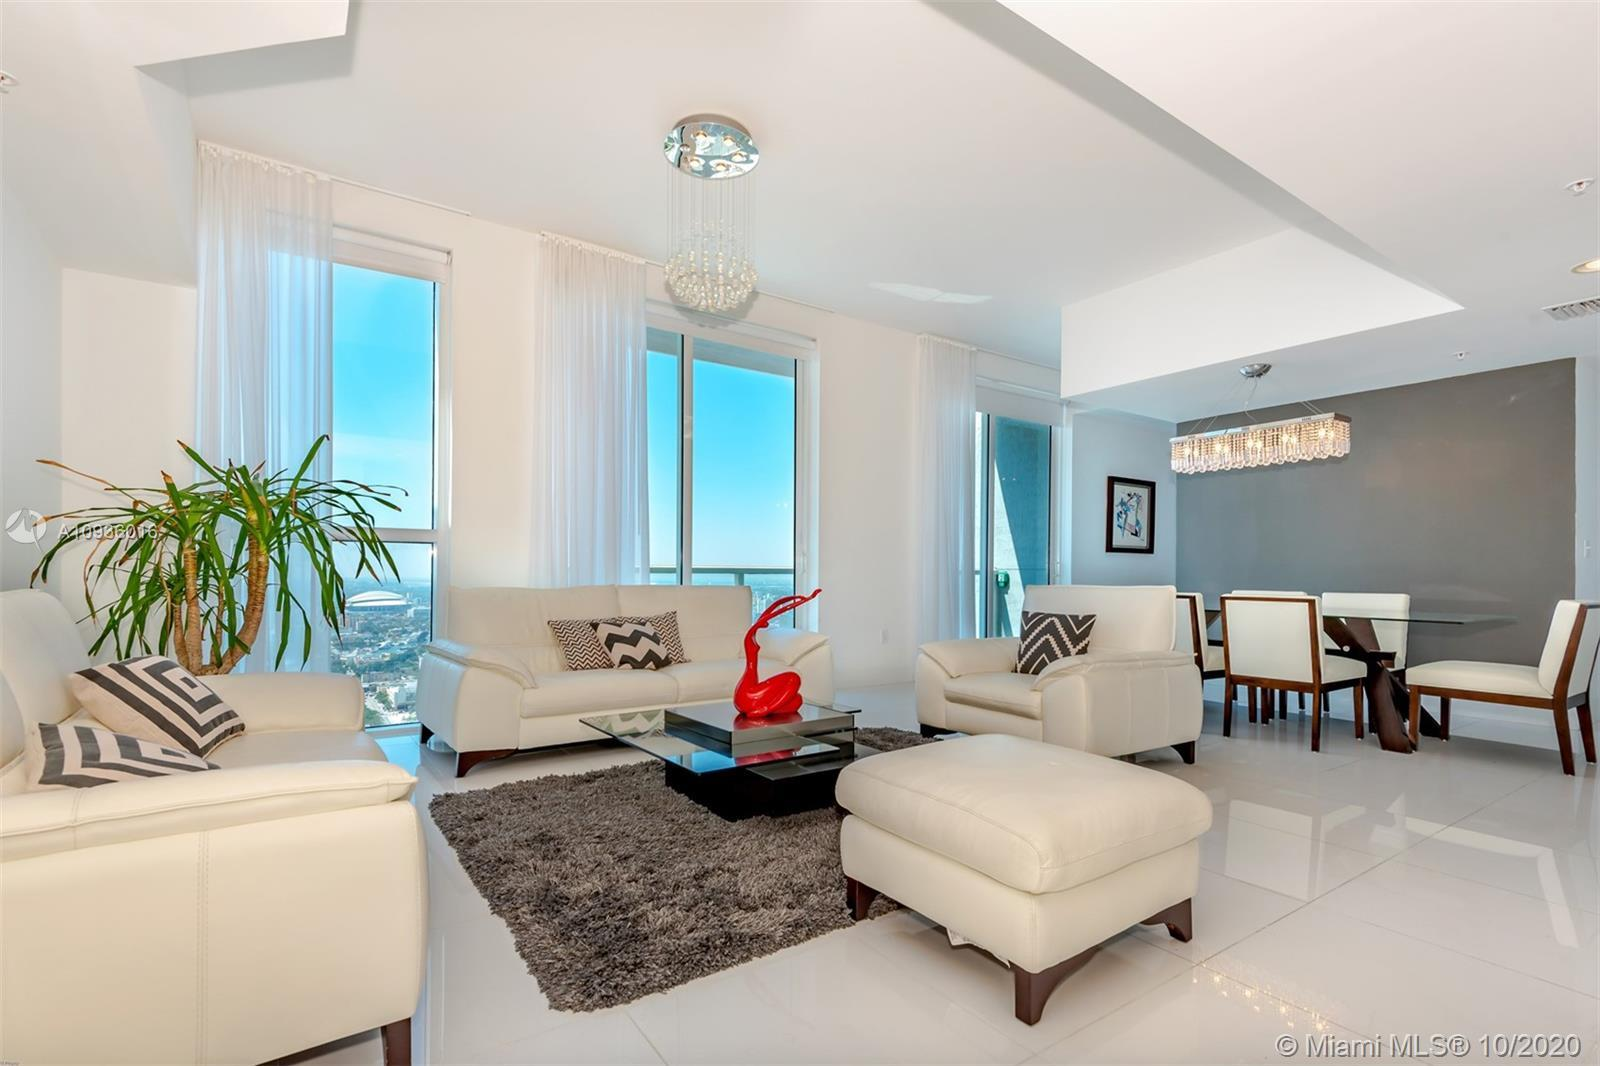 Unique opportunity to own 3 Story Penthouse in heart of downtown Miami. Building amenities include 2